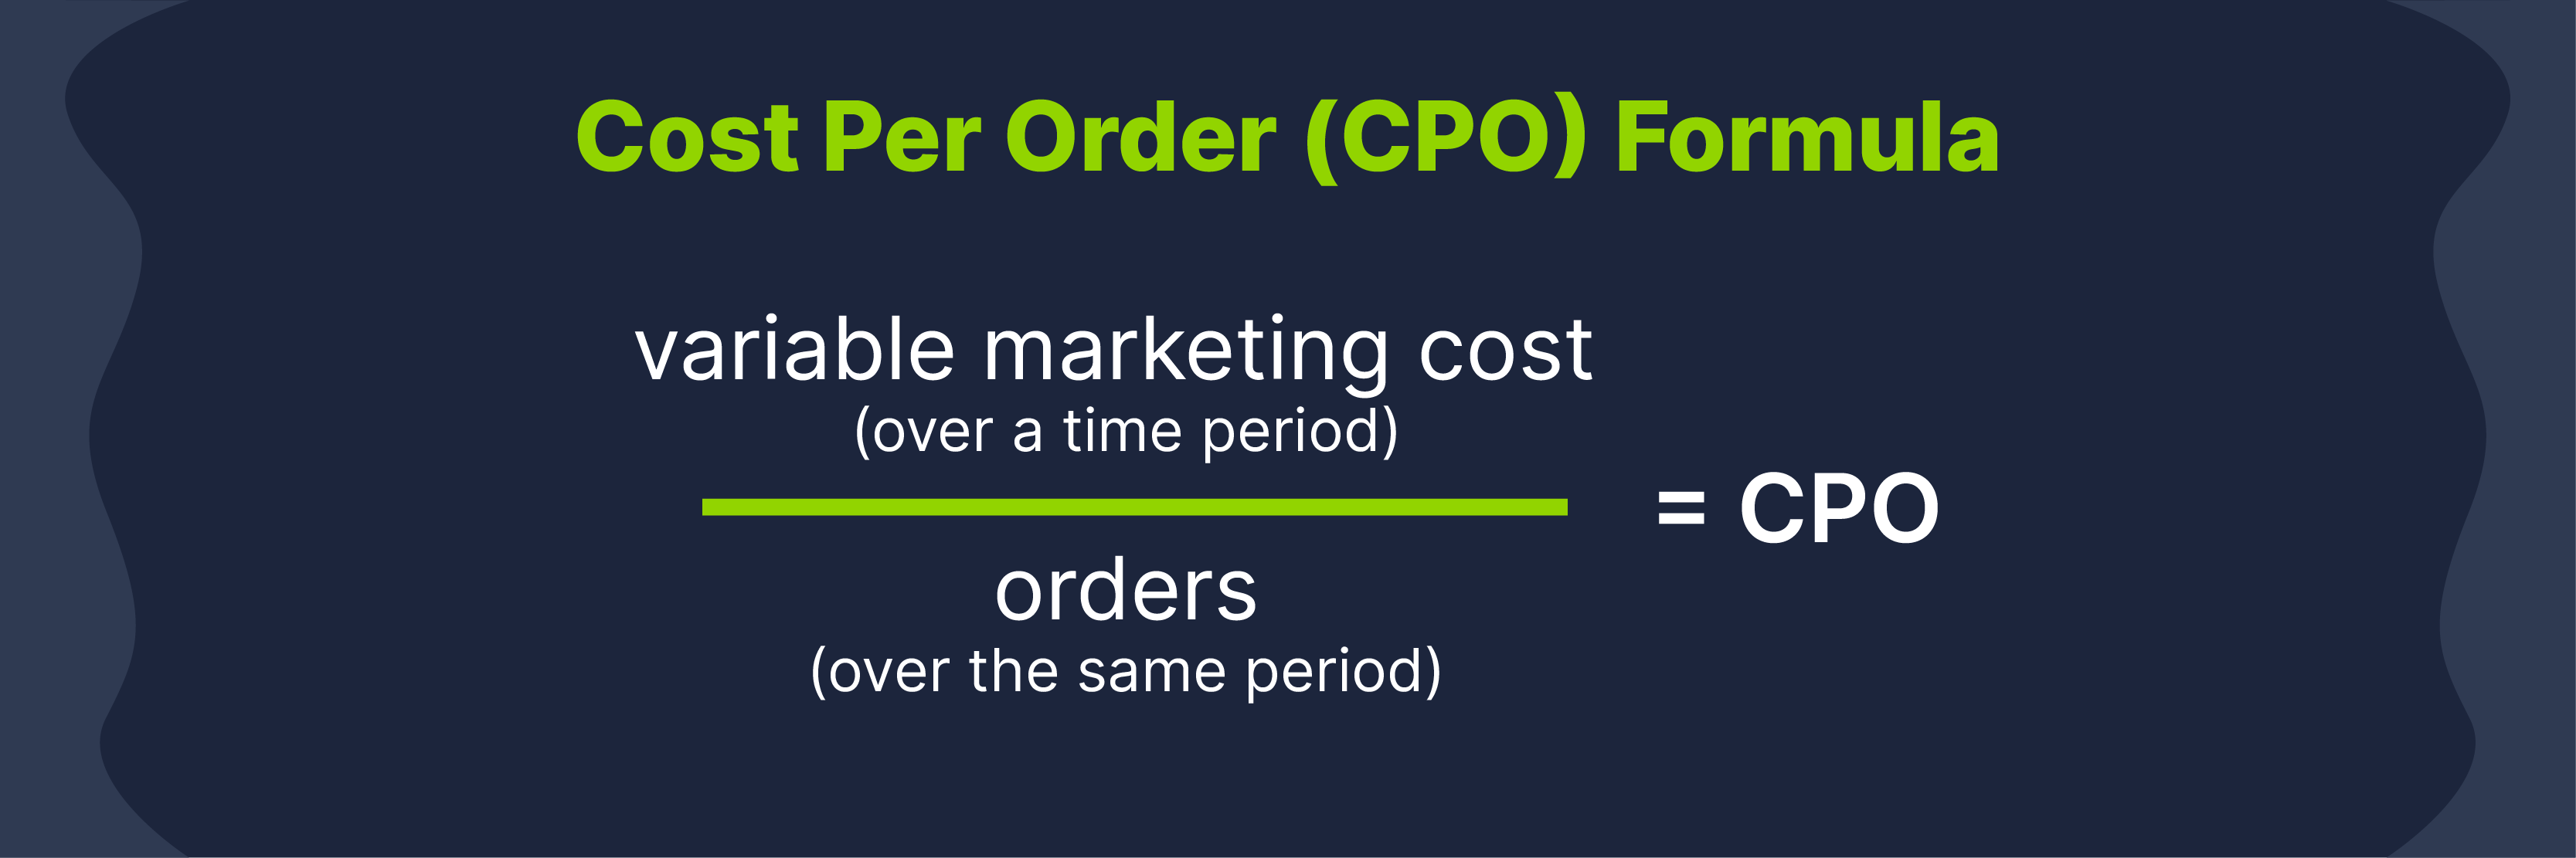 cost per order formula: to calculate cost per order, divide variable marketing cost (over a time period) by number of orders (over the same period)